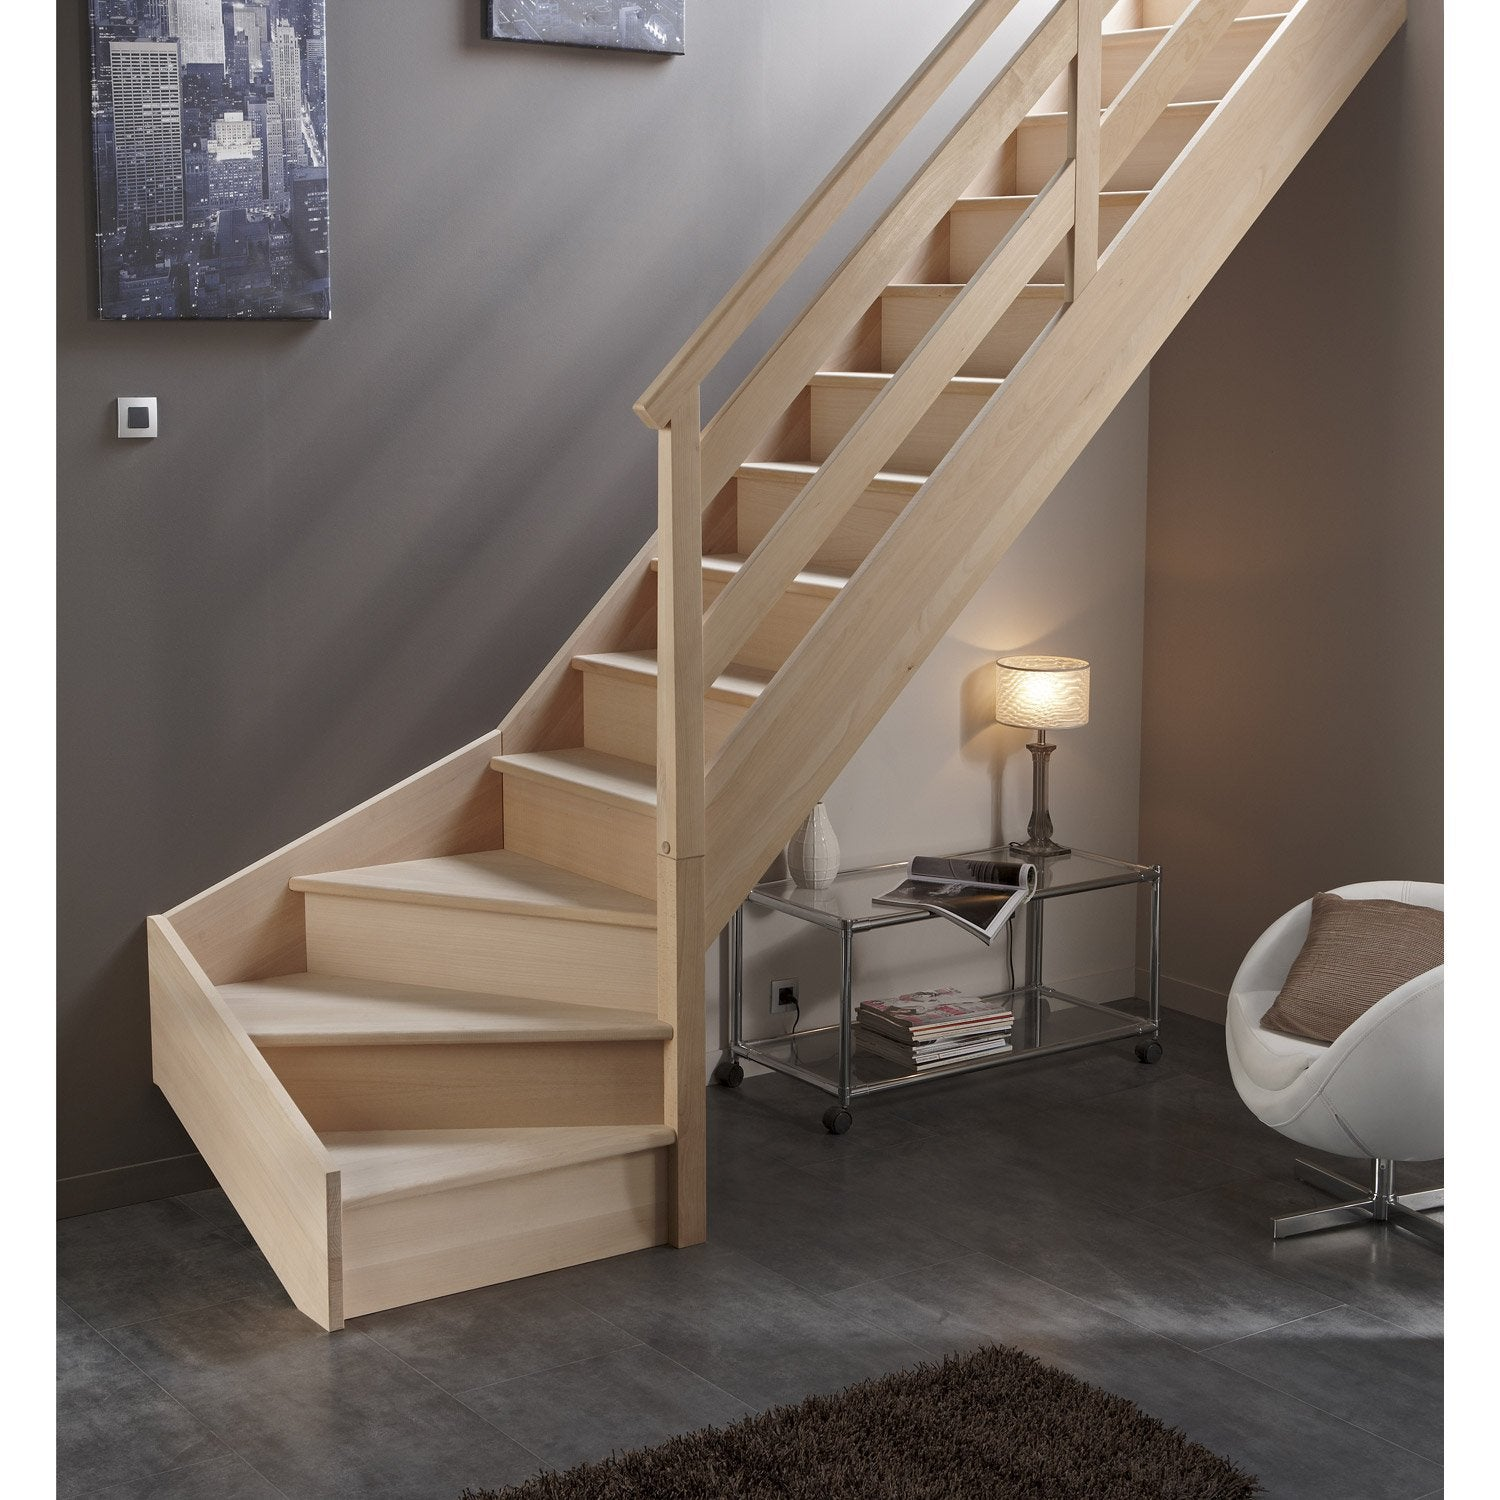 pose d 39 un escalier quart tournant en bois massif leroy. Black Bedroom Furniture Sets. Home Design Ideas